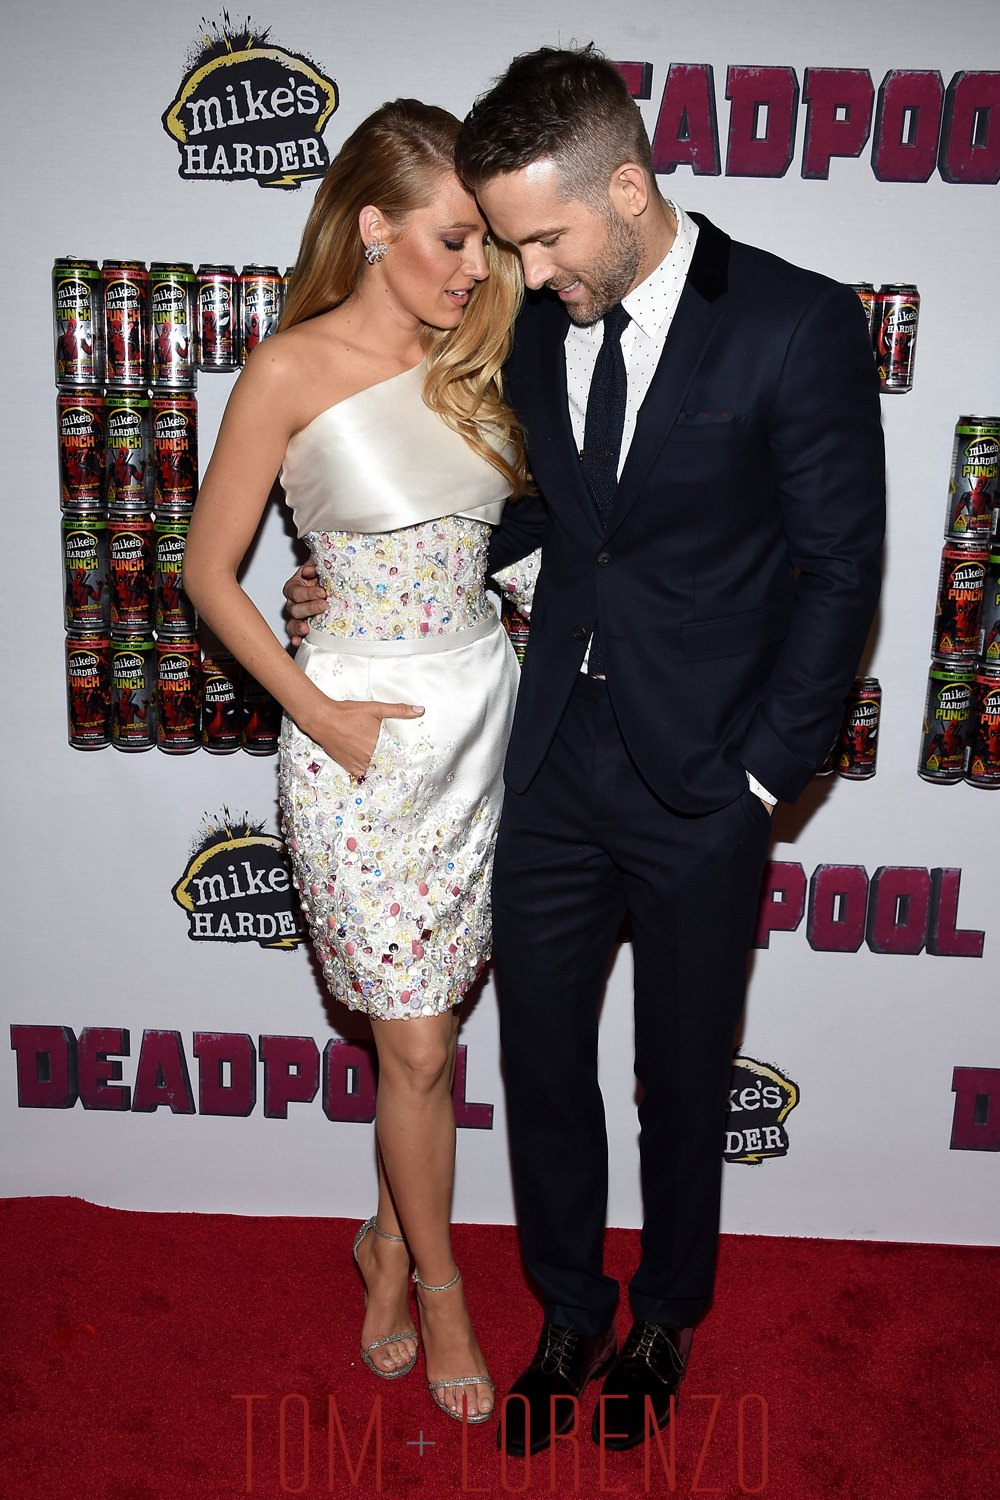 Blake-Lively-Ryan-Reynolds-Deadpool-NYC-Fan-Event-Fashion-Chanel-Couture-Tom-Lorenzo-Site (1)